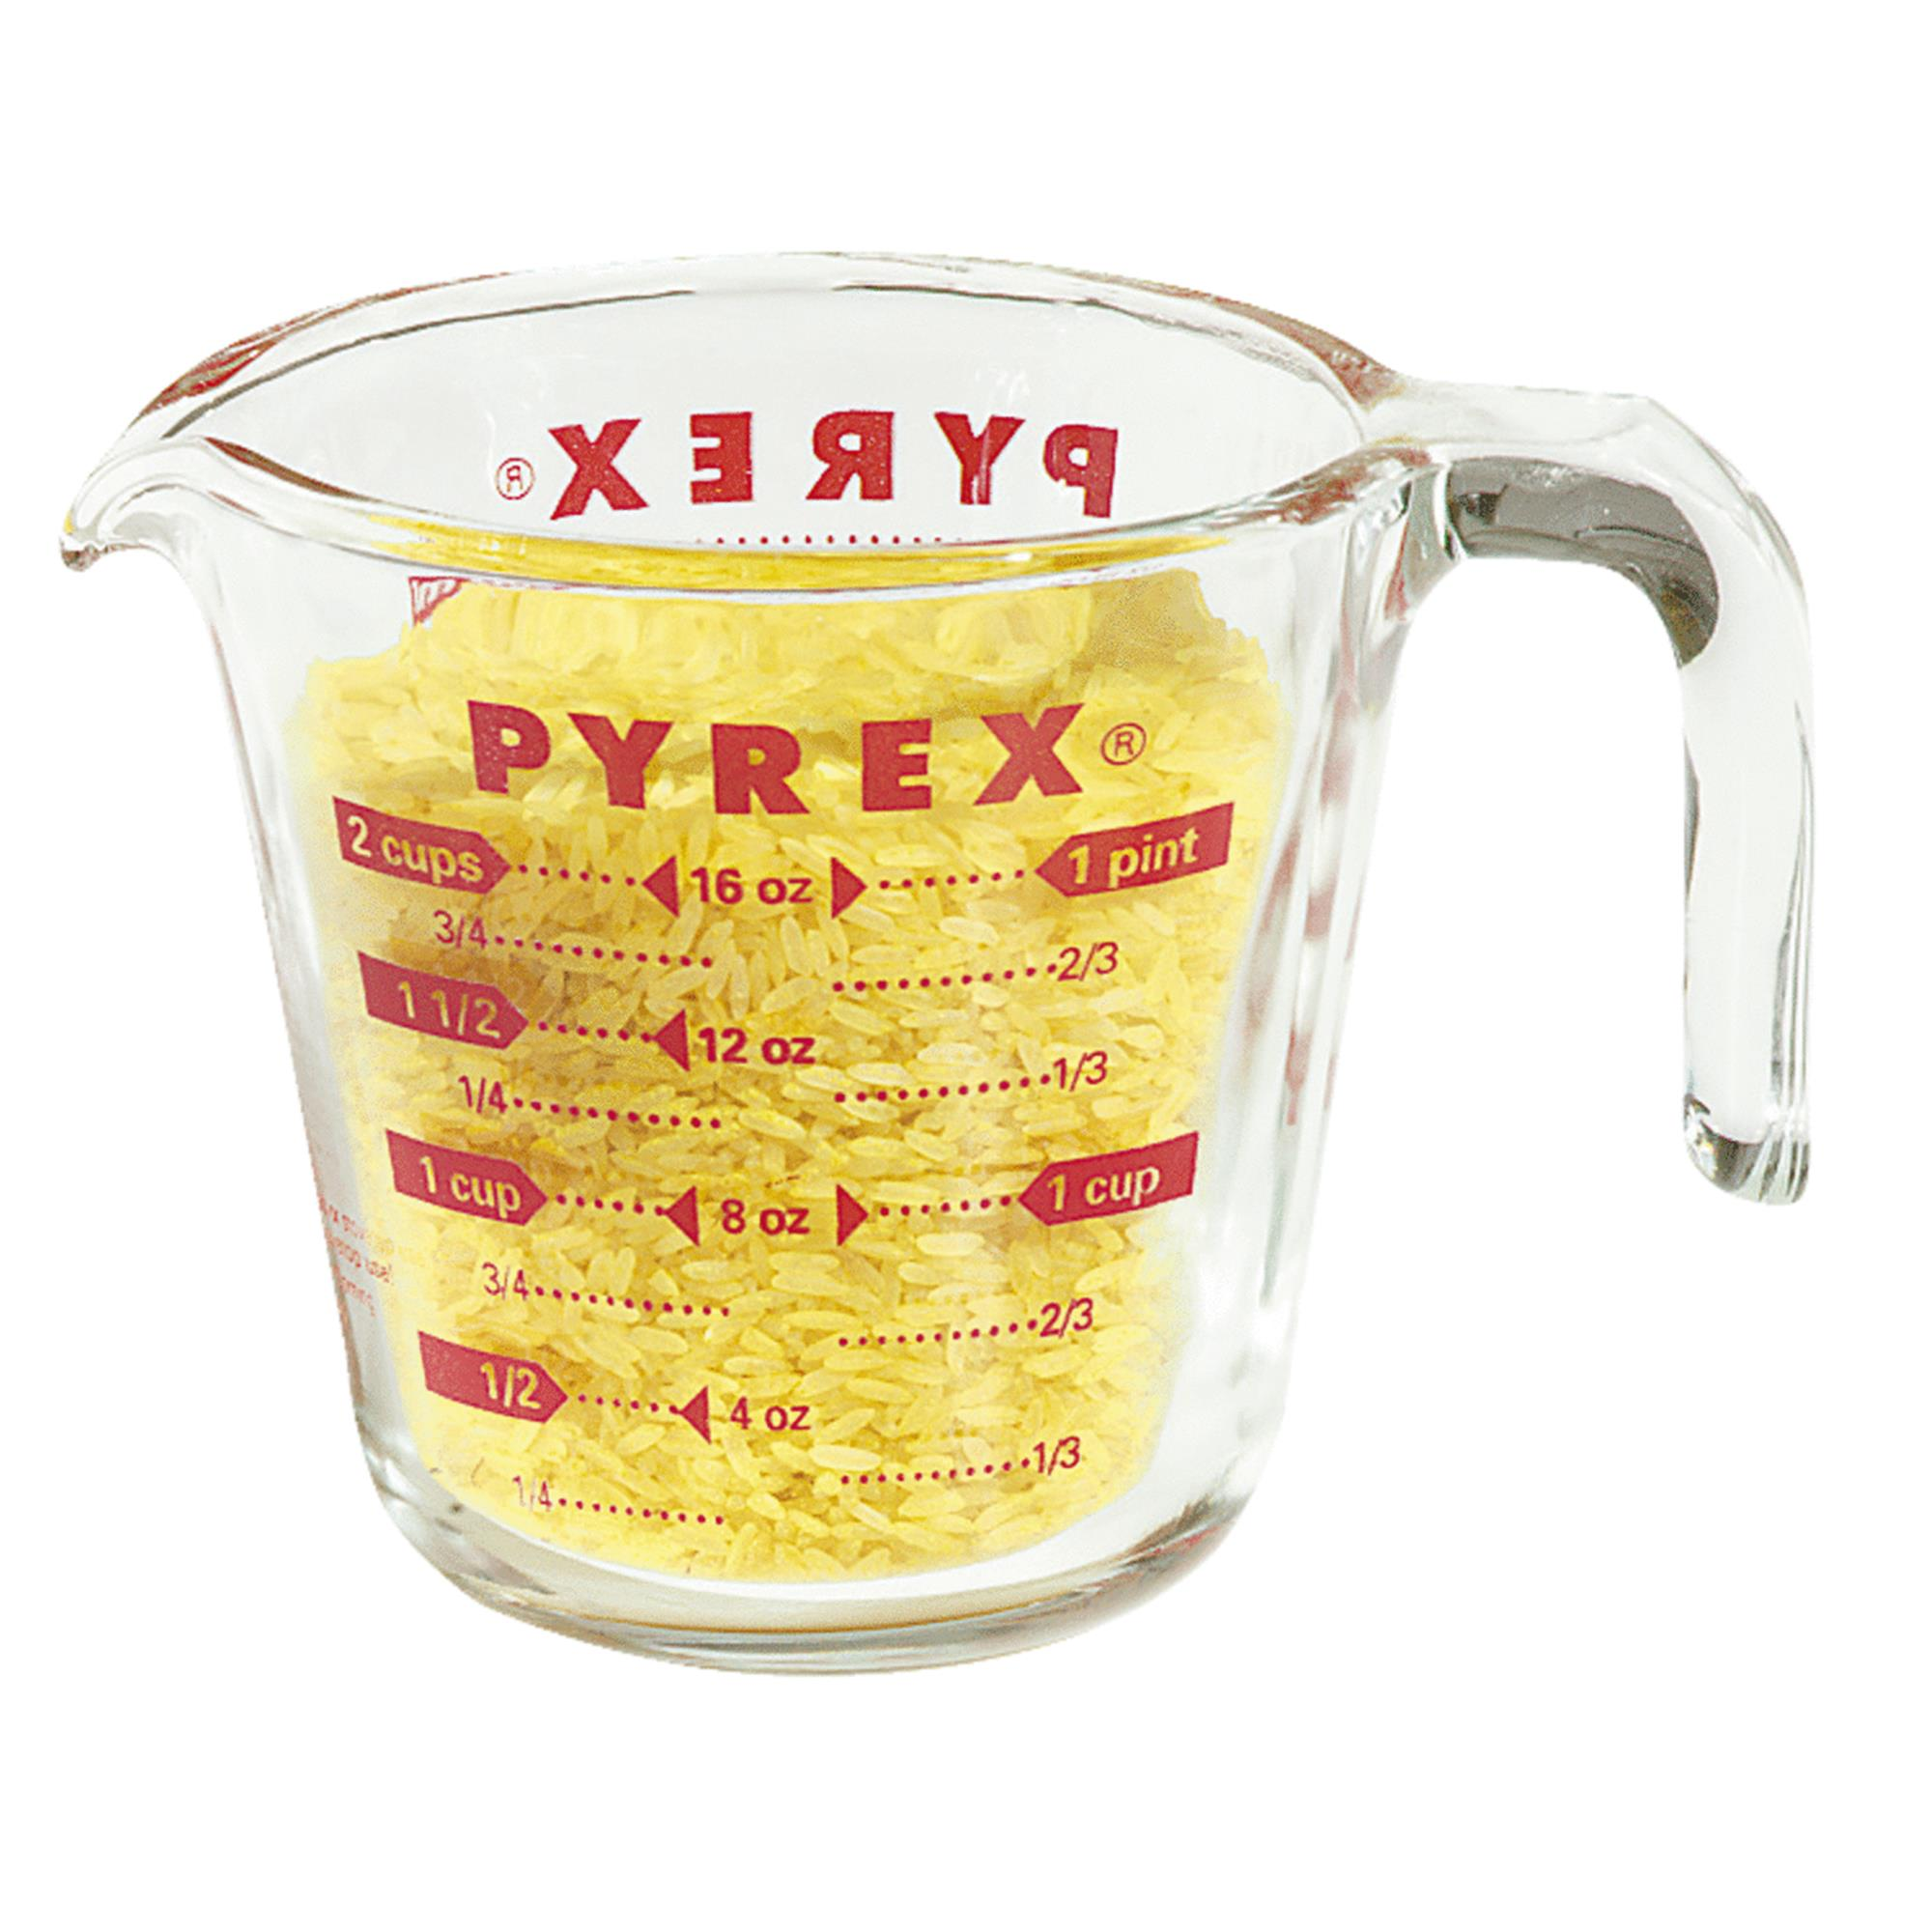 Pyrex Pyrex Prepware 2 Cup Measuring Cup with Red Graphics